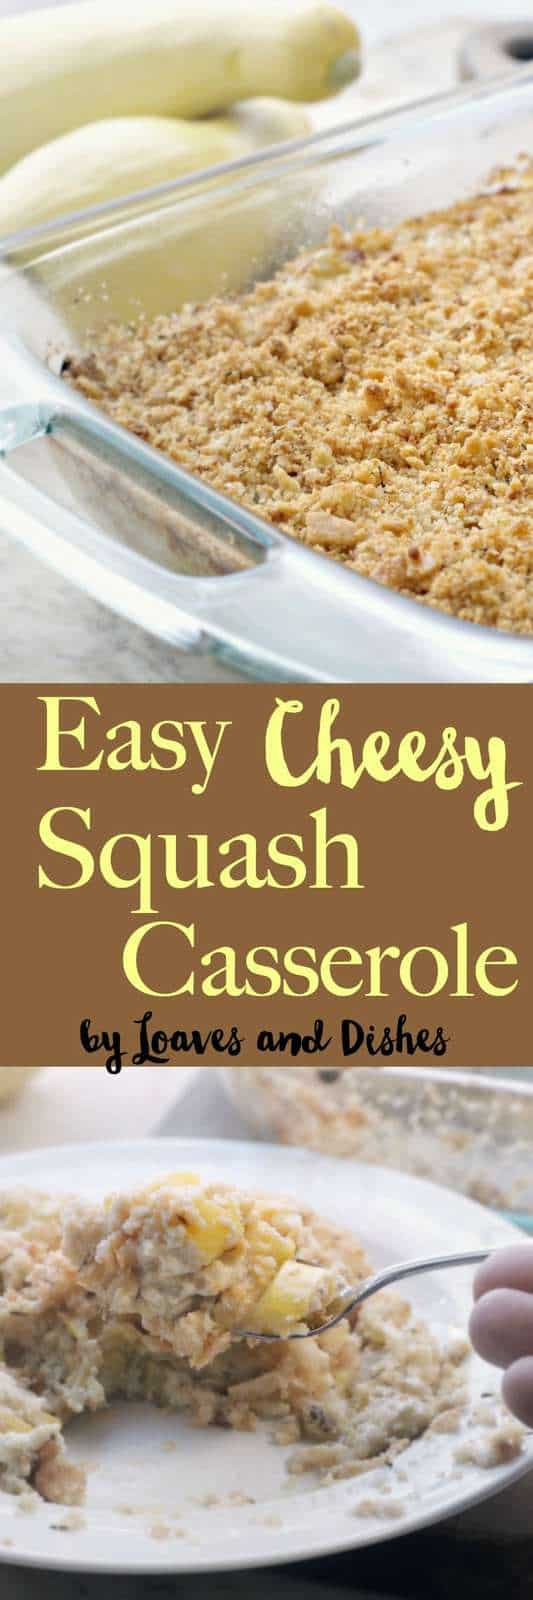 Easy Squash Casserole like your grandma used to make - or the Pioneer Woman or Paula Deen. Healthy and low carb - depending on how many crackers or stuffing you put in it. Typical Southern Recipe